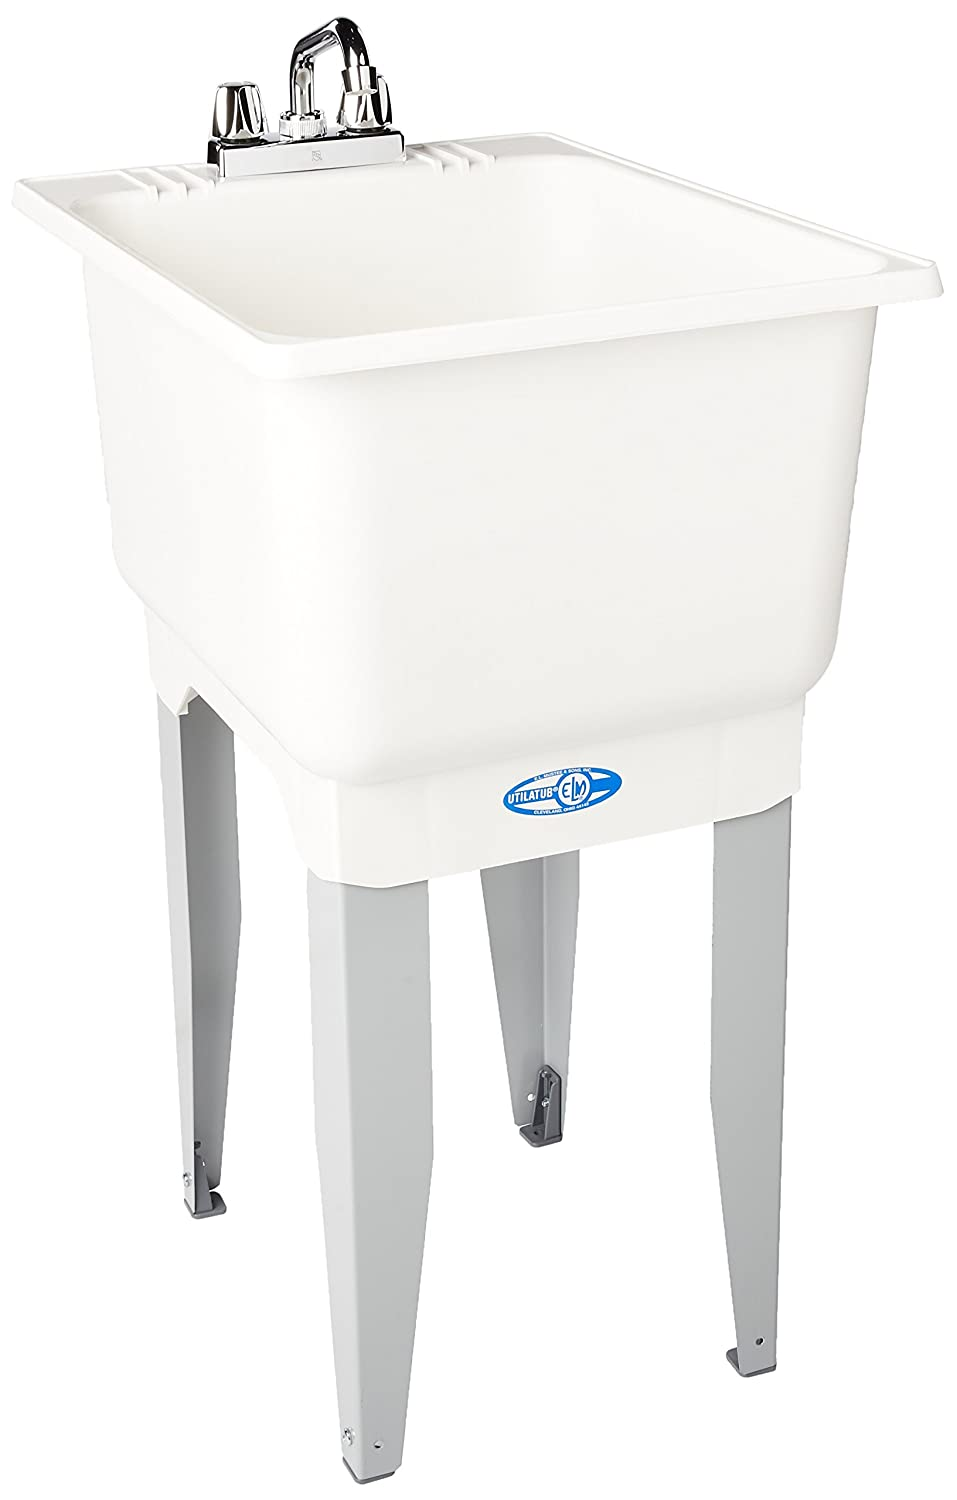 El Mustee 12C Utilatub 15-Gallon Floor-Mount Combo Laundry/Utility Tub, 33 X 18 X 23-1/2 In, White